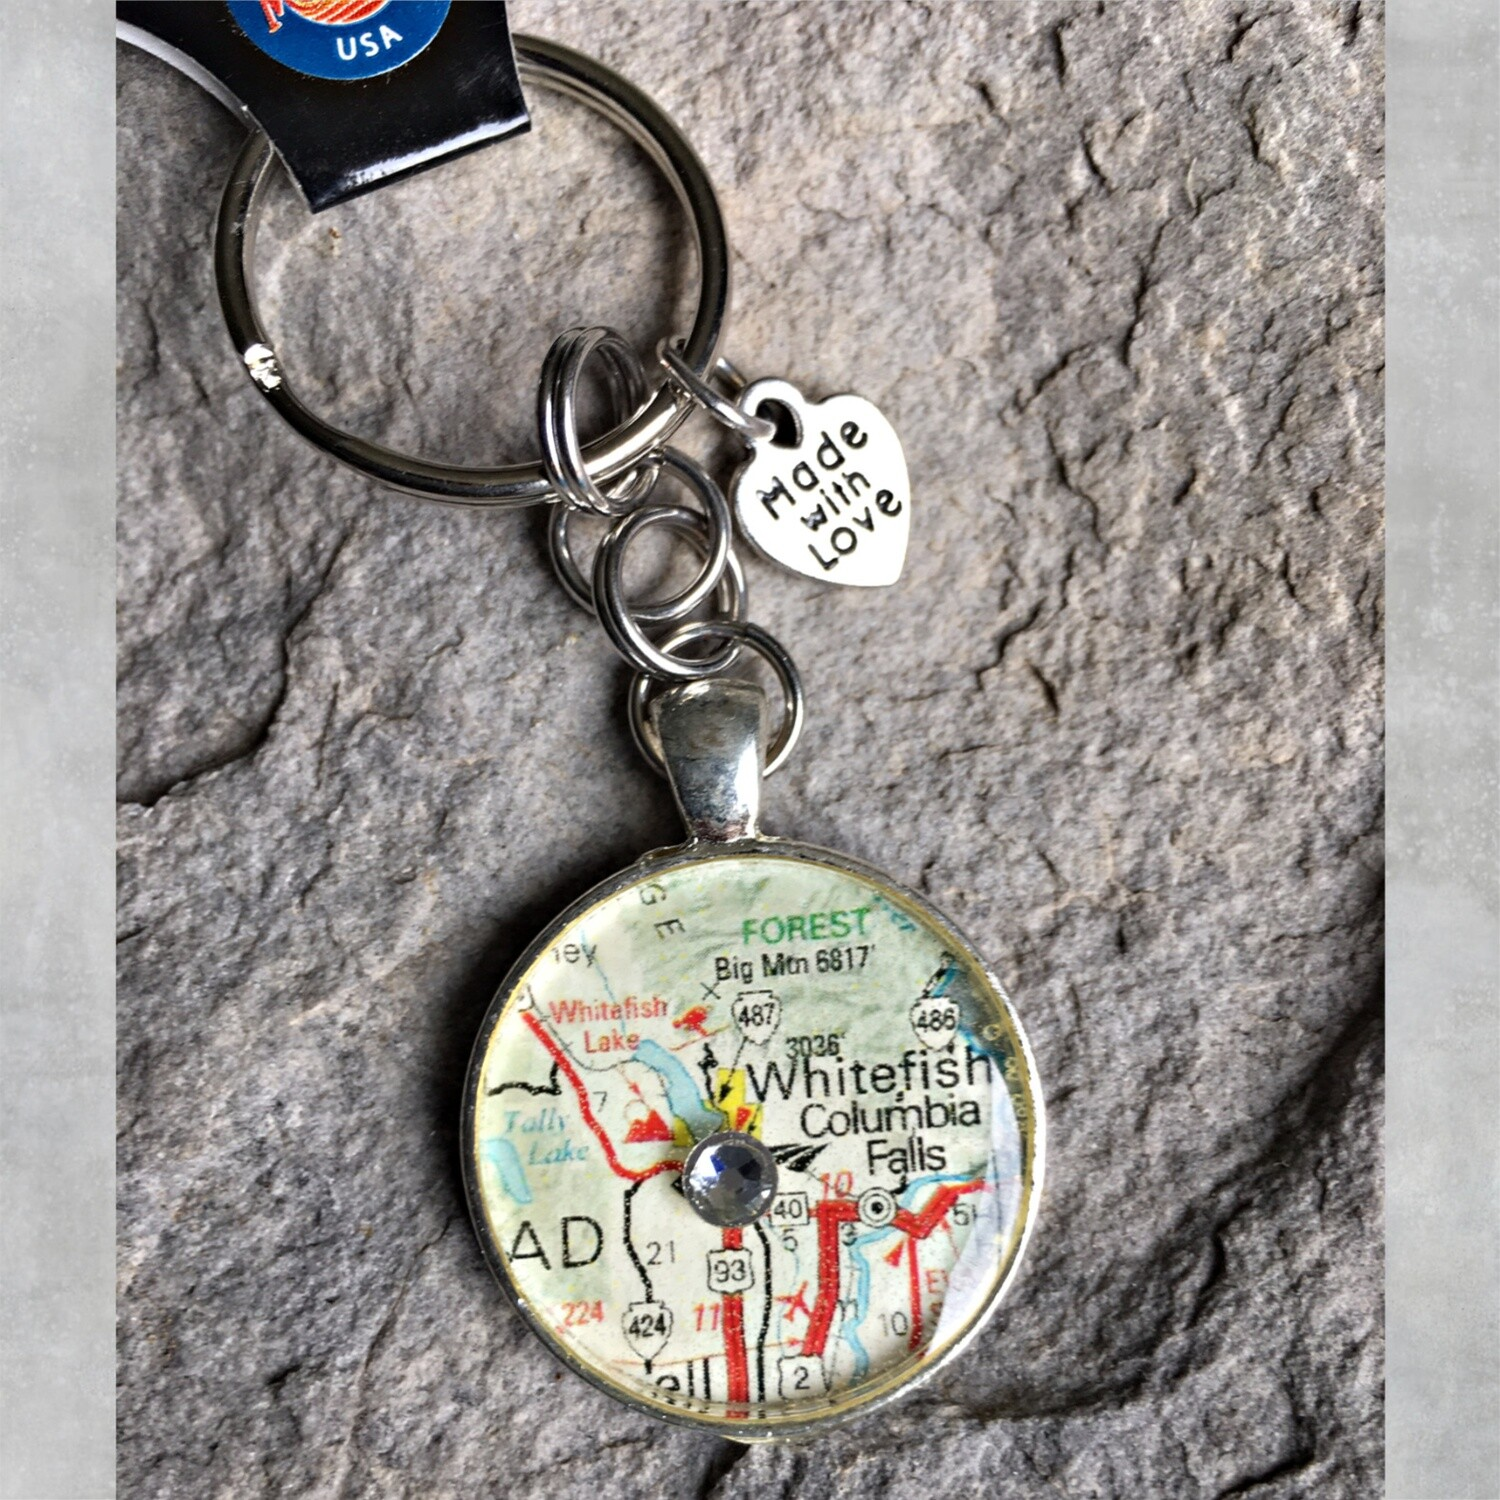 Whitefish/Columbia Falls Map Keychain 40-19-4